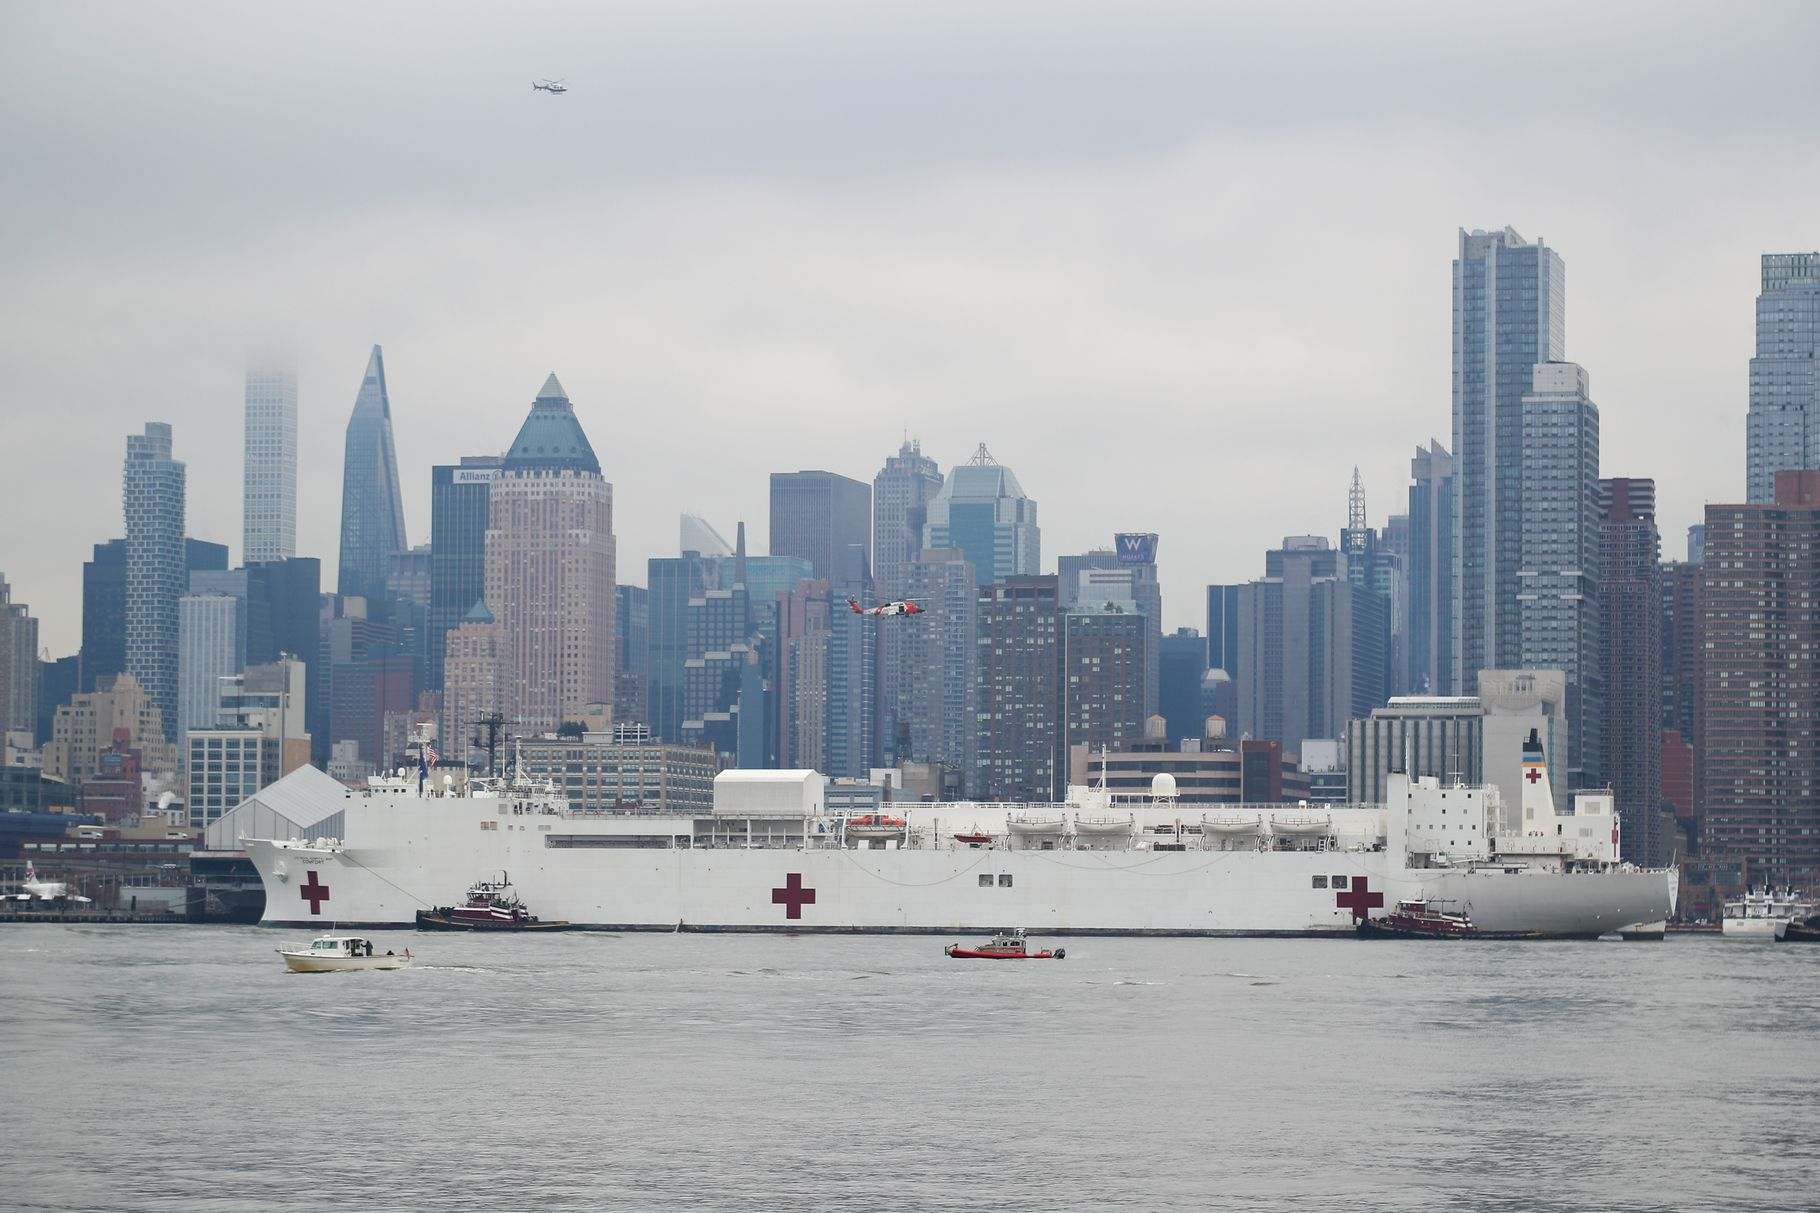 Everything You Need To Know About The Usns Comfort The Giant Hospital Ship In Nyc Army Corps Of Engineers San Clemente Rose City